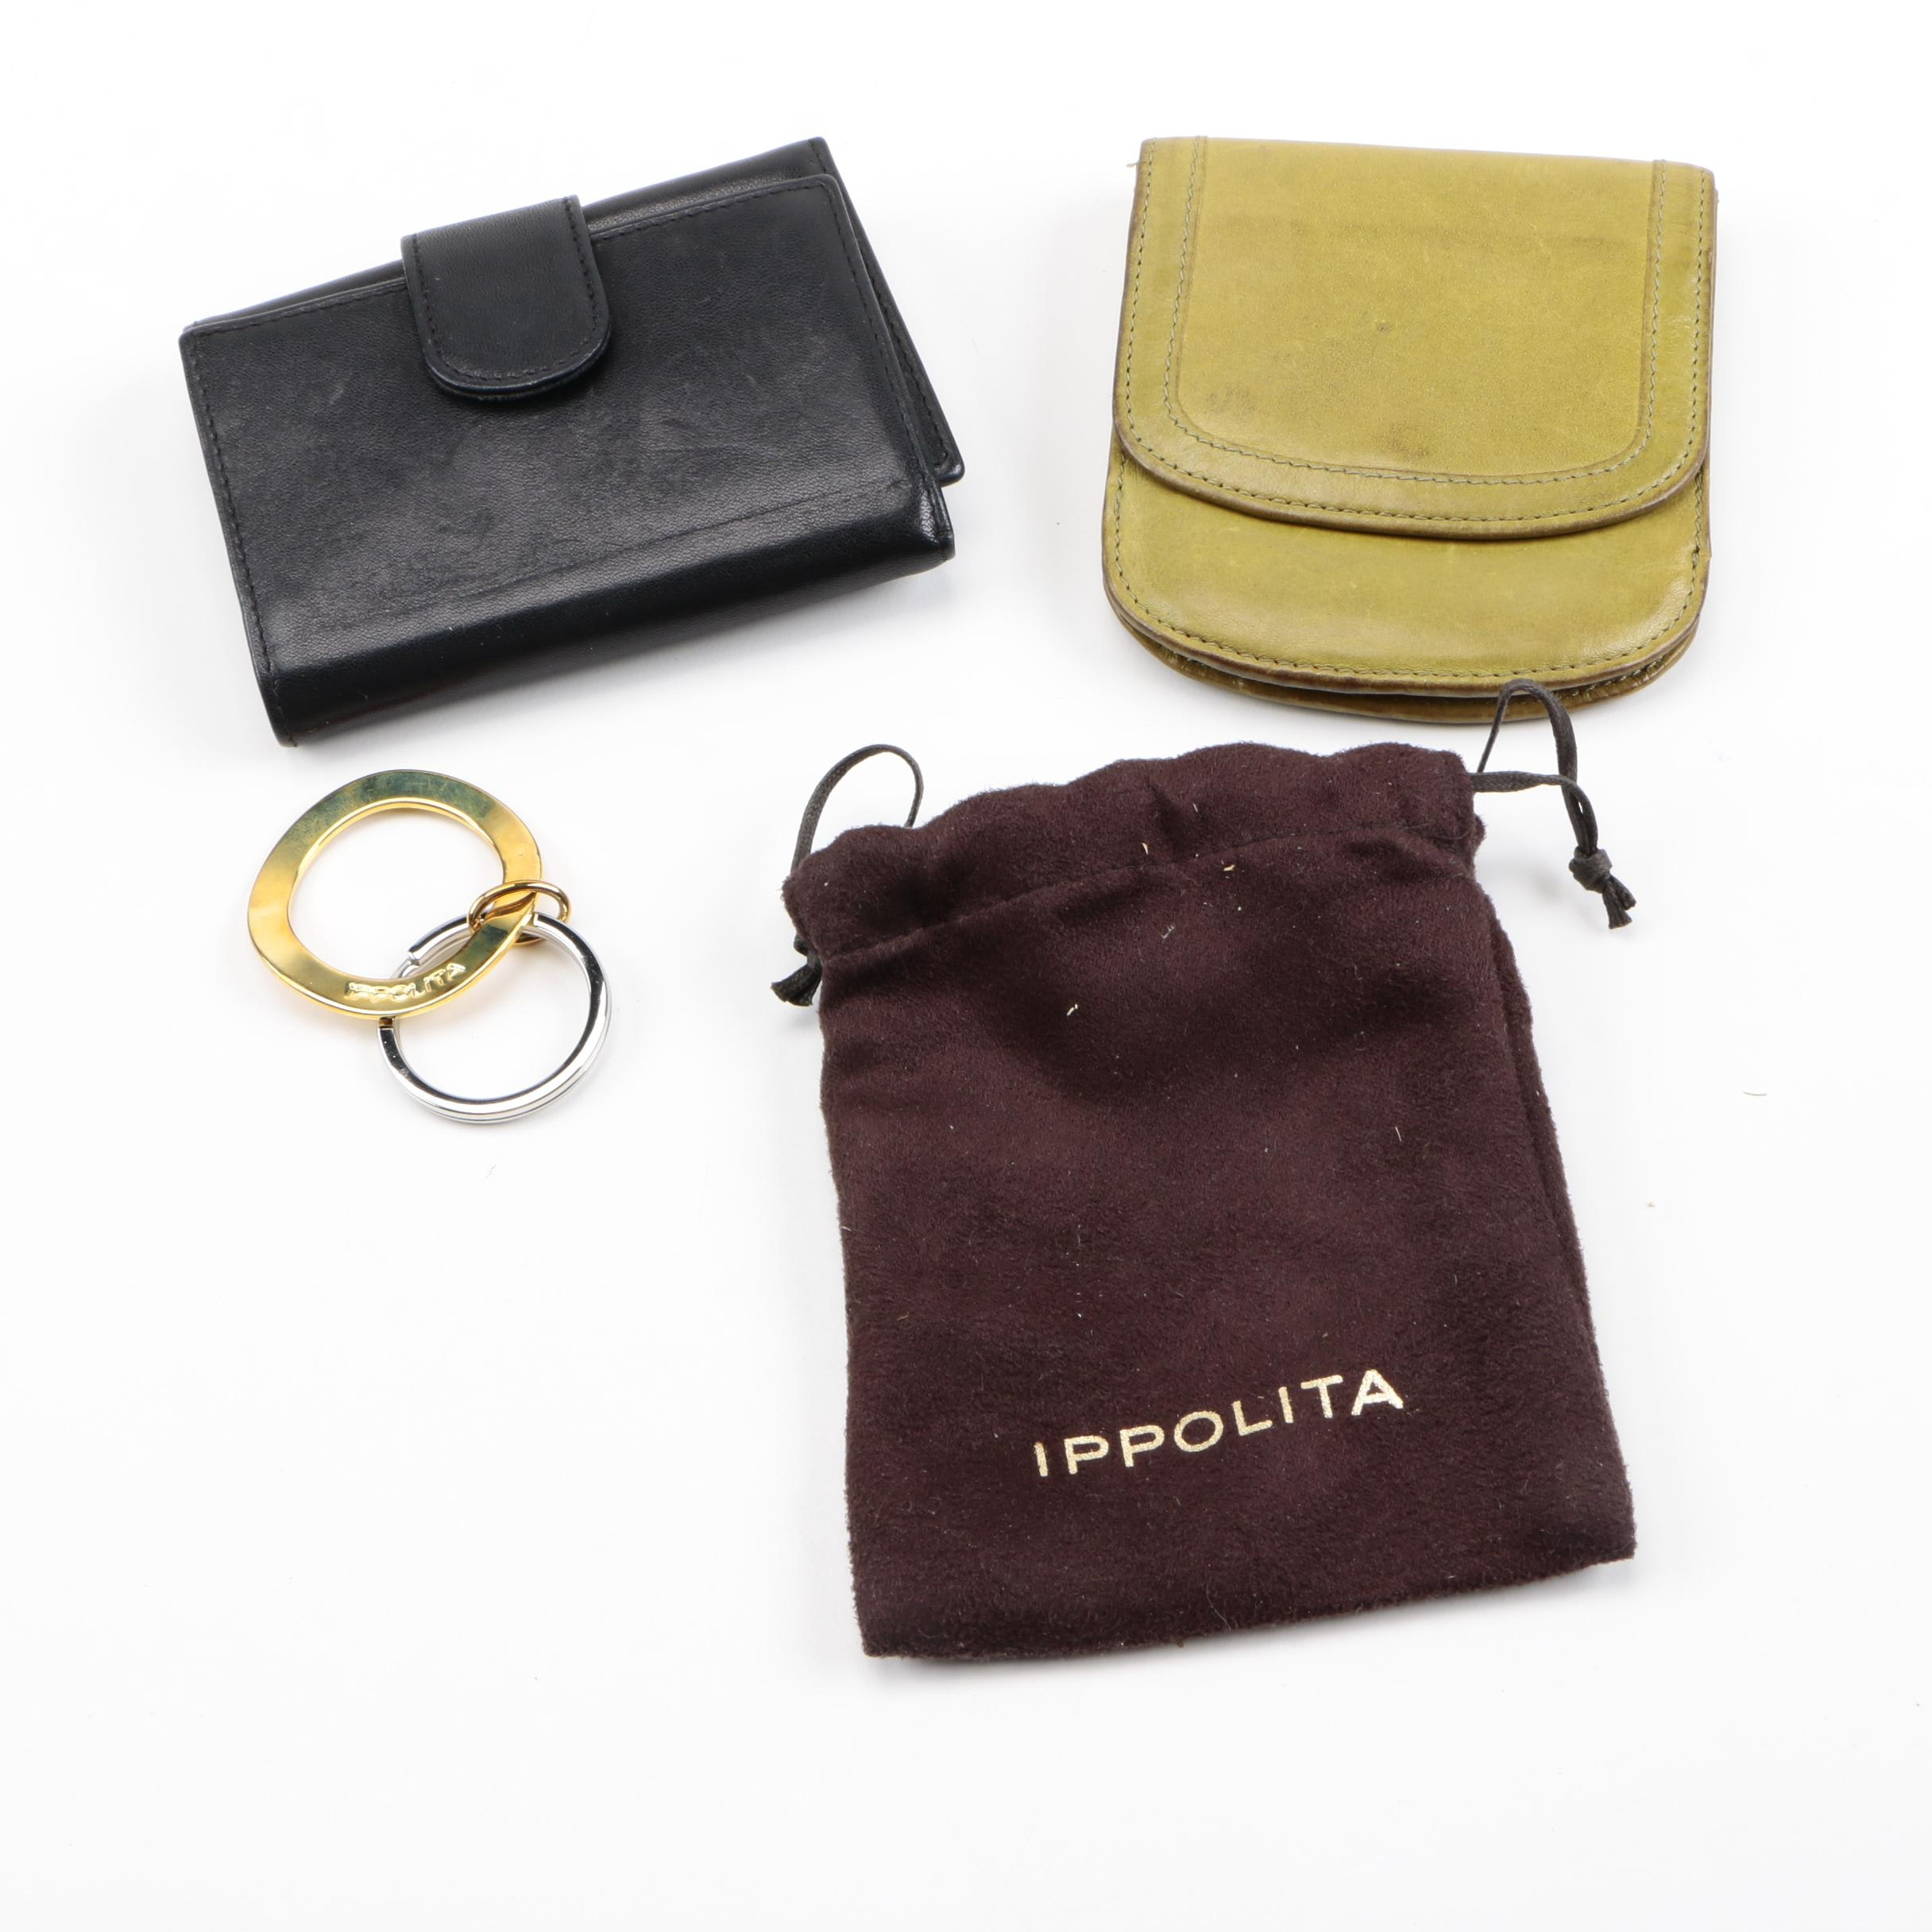 Leather Wallets and Ippolita Key Fob